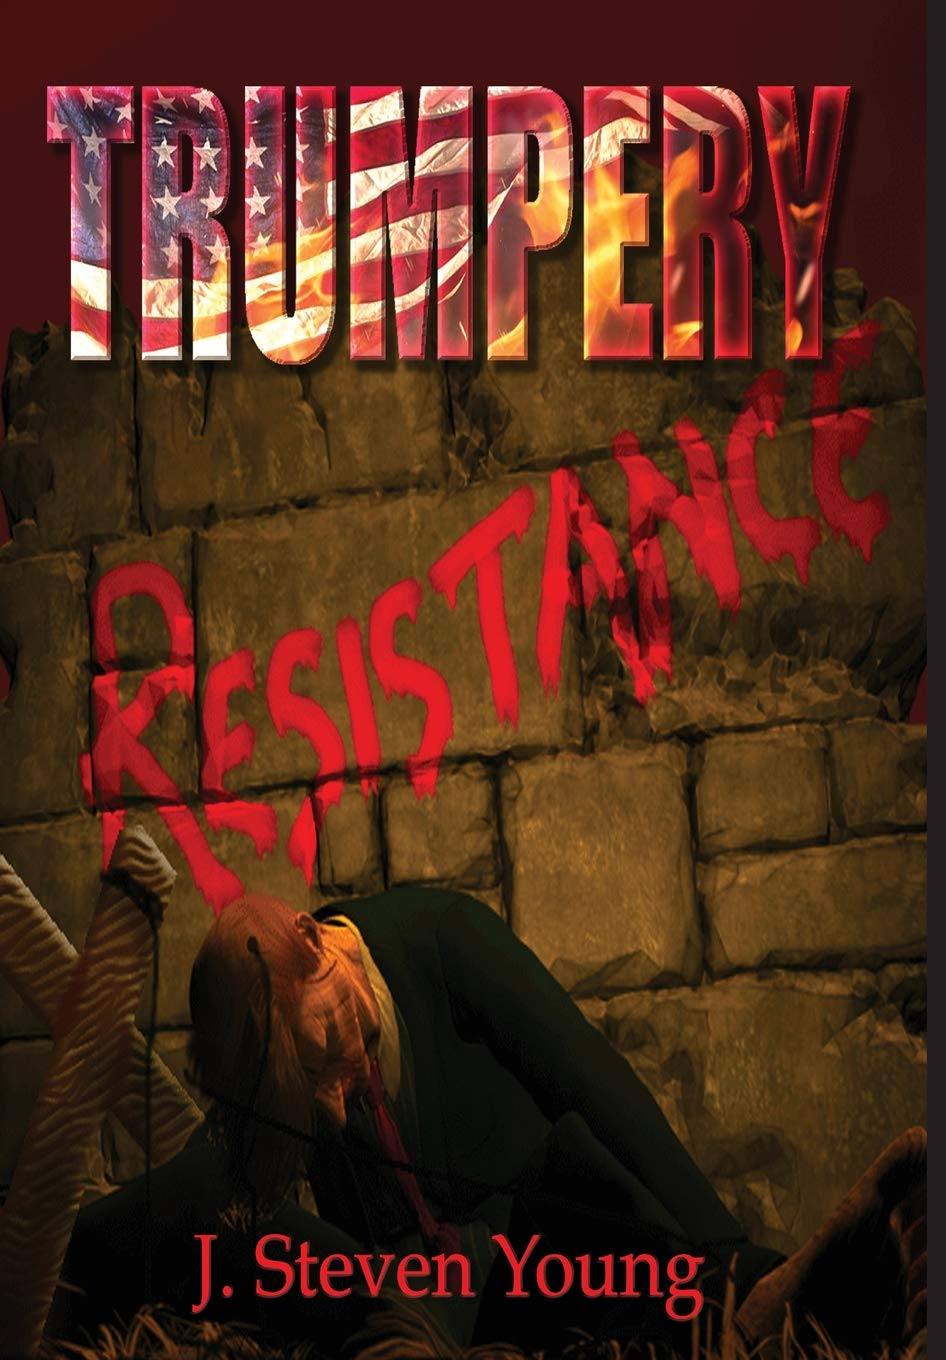 Trumpery Resistance by Tasicas-Young Press